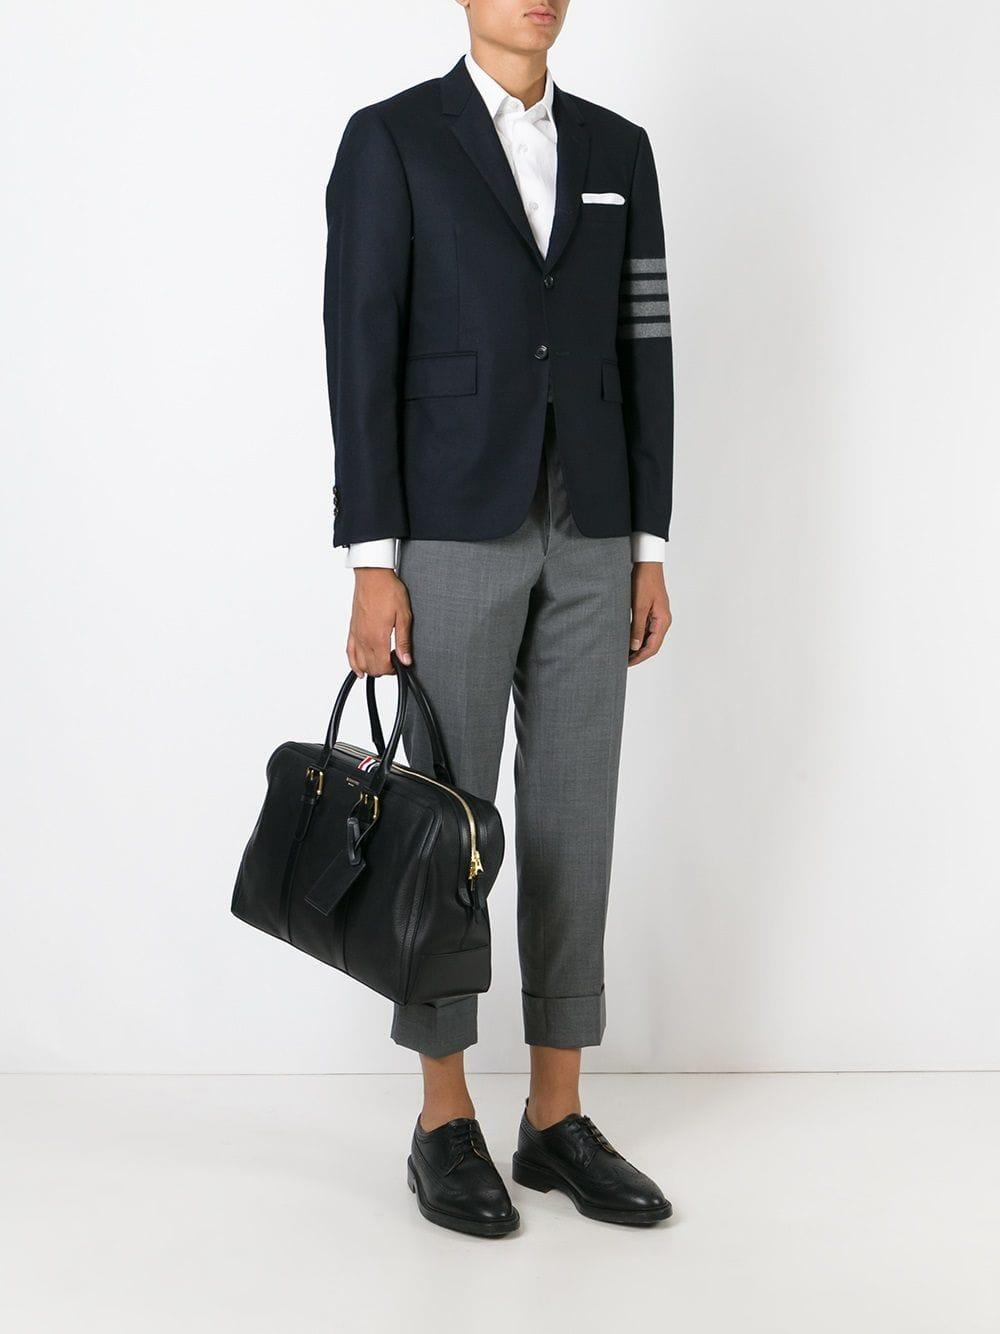 404f5acda324e Lyst - Thom Browne Double Zip Tote Bag in Black for Men